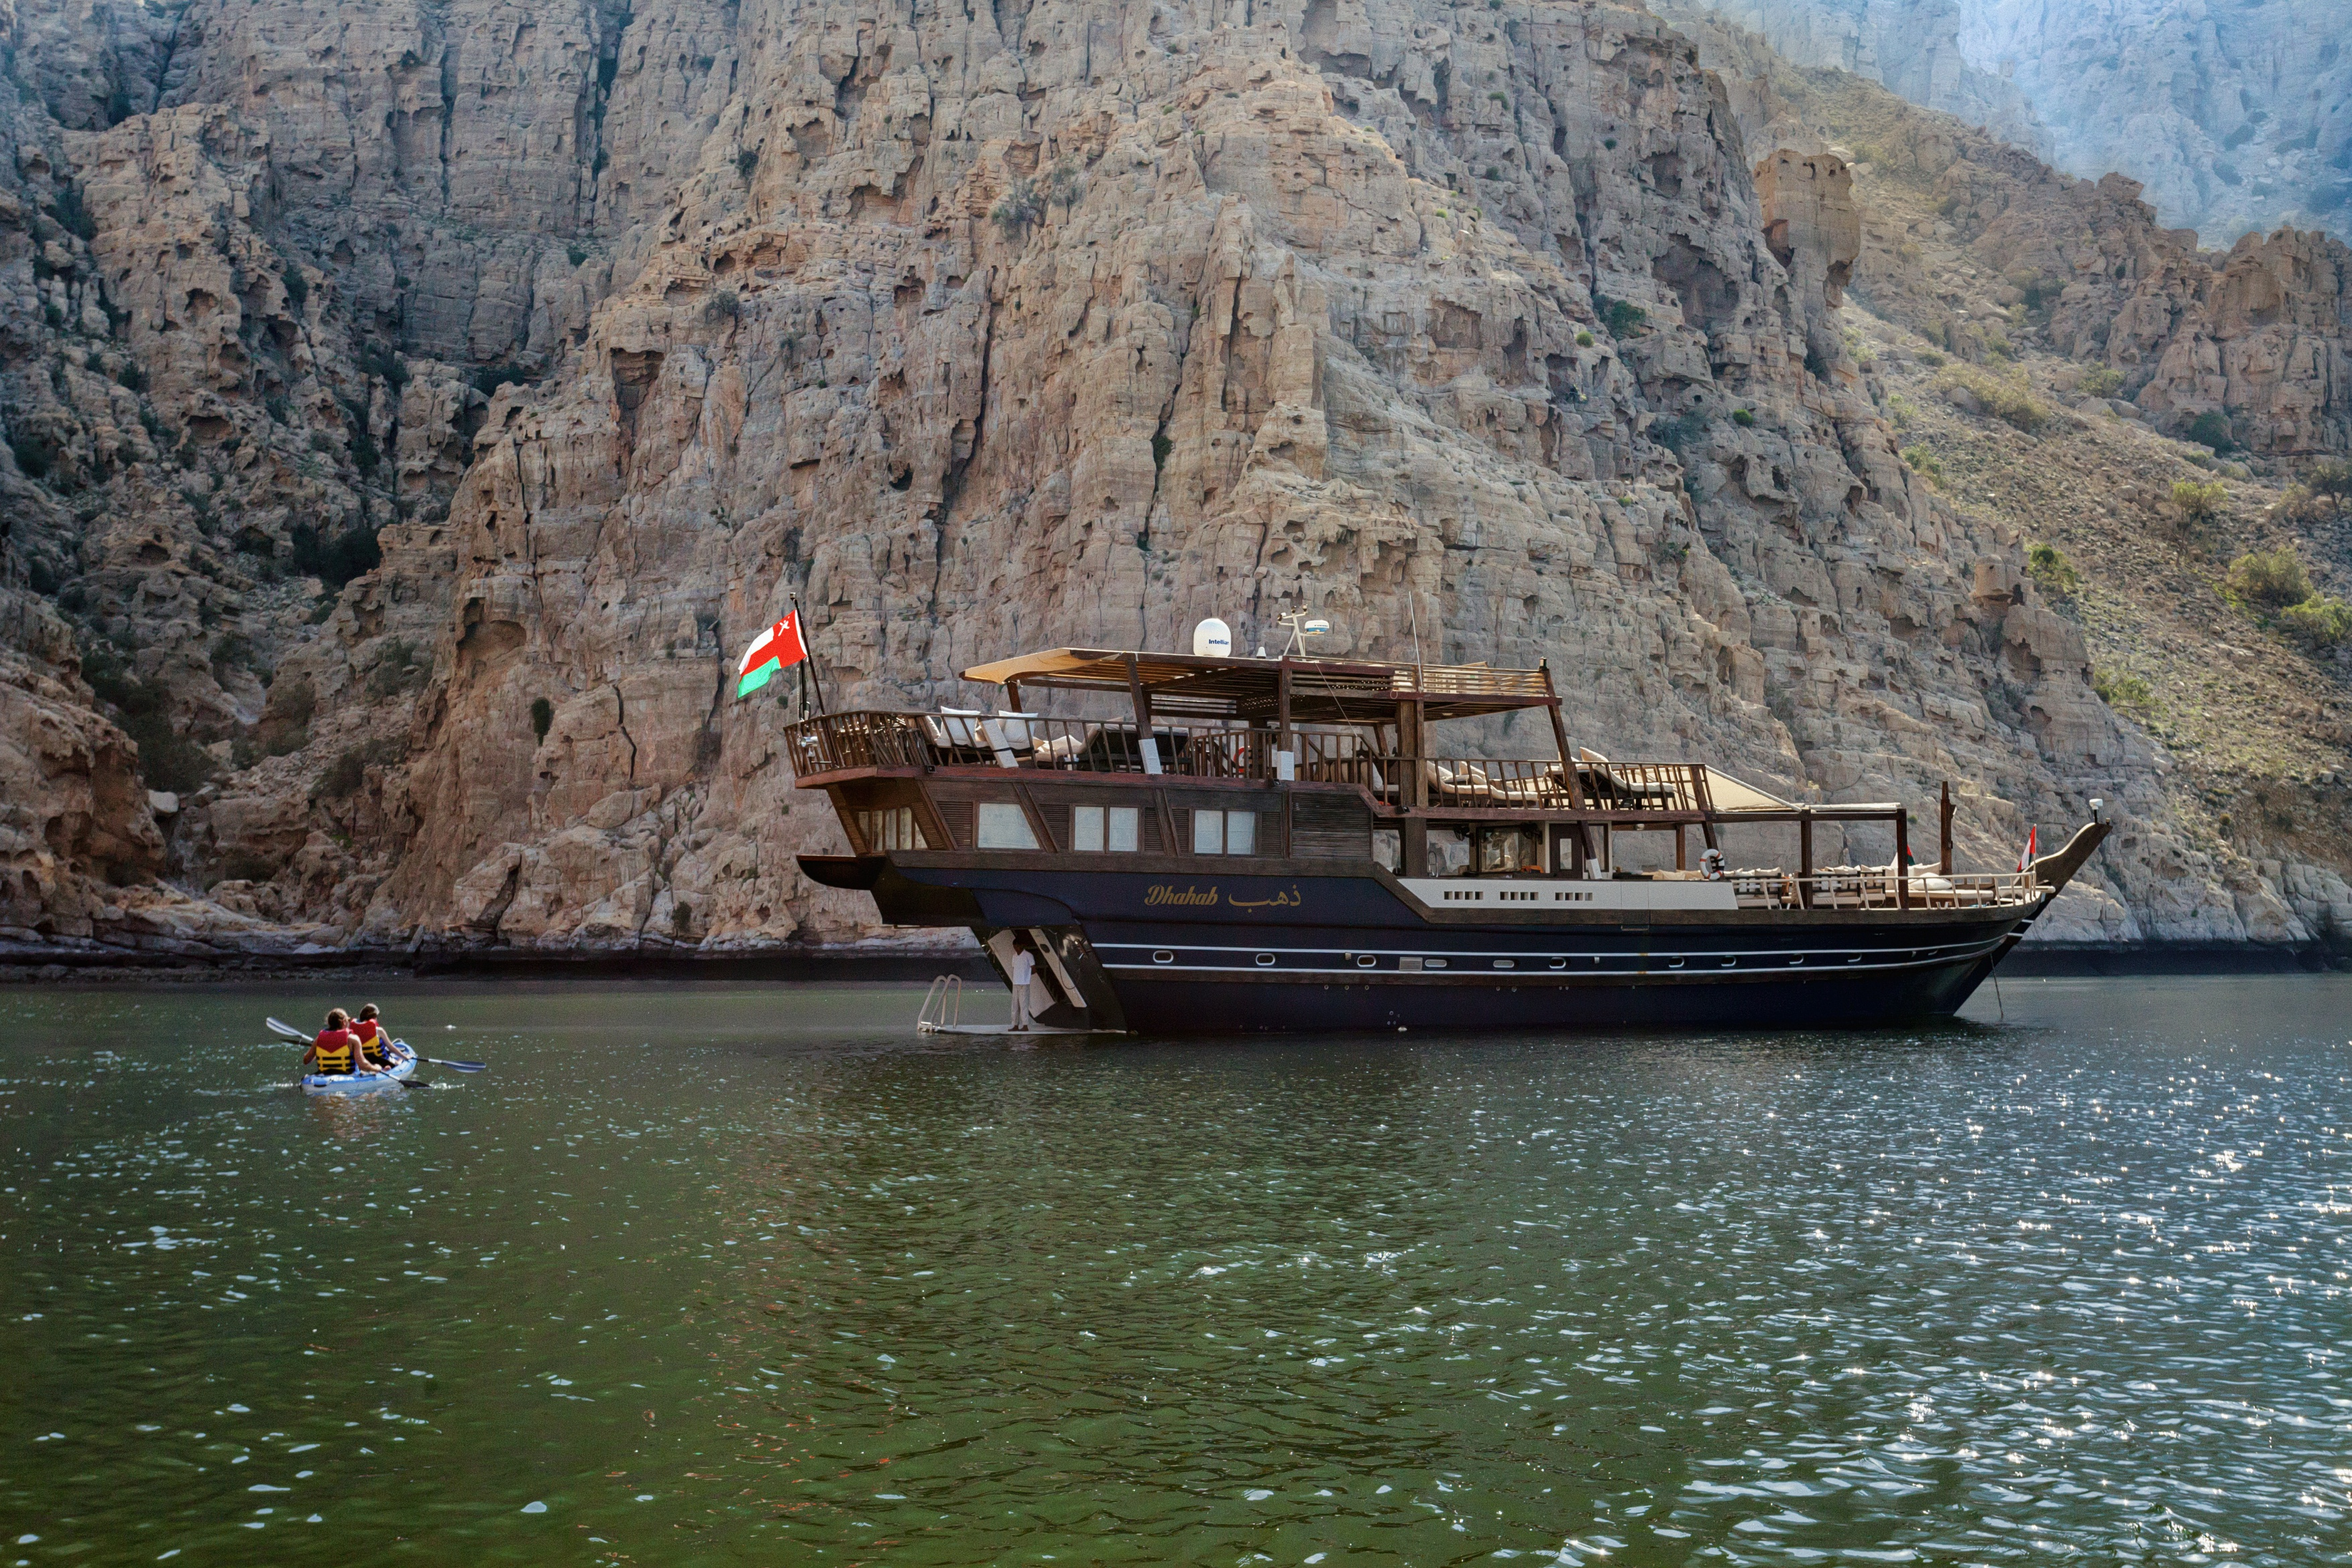 dhahab-six-senses-luxury-dhow